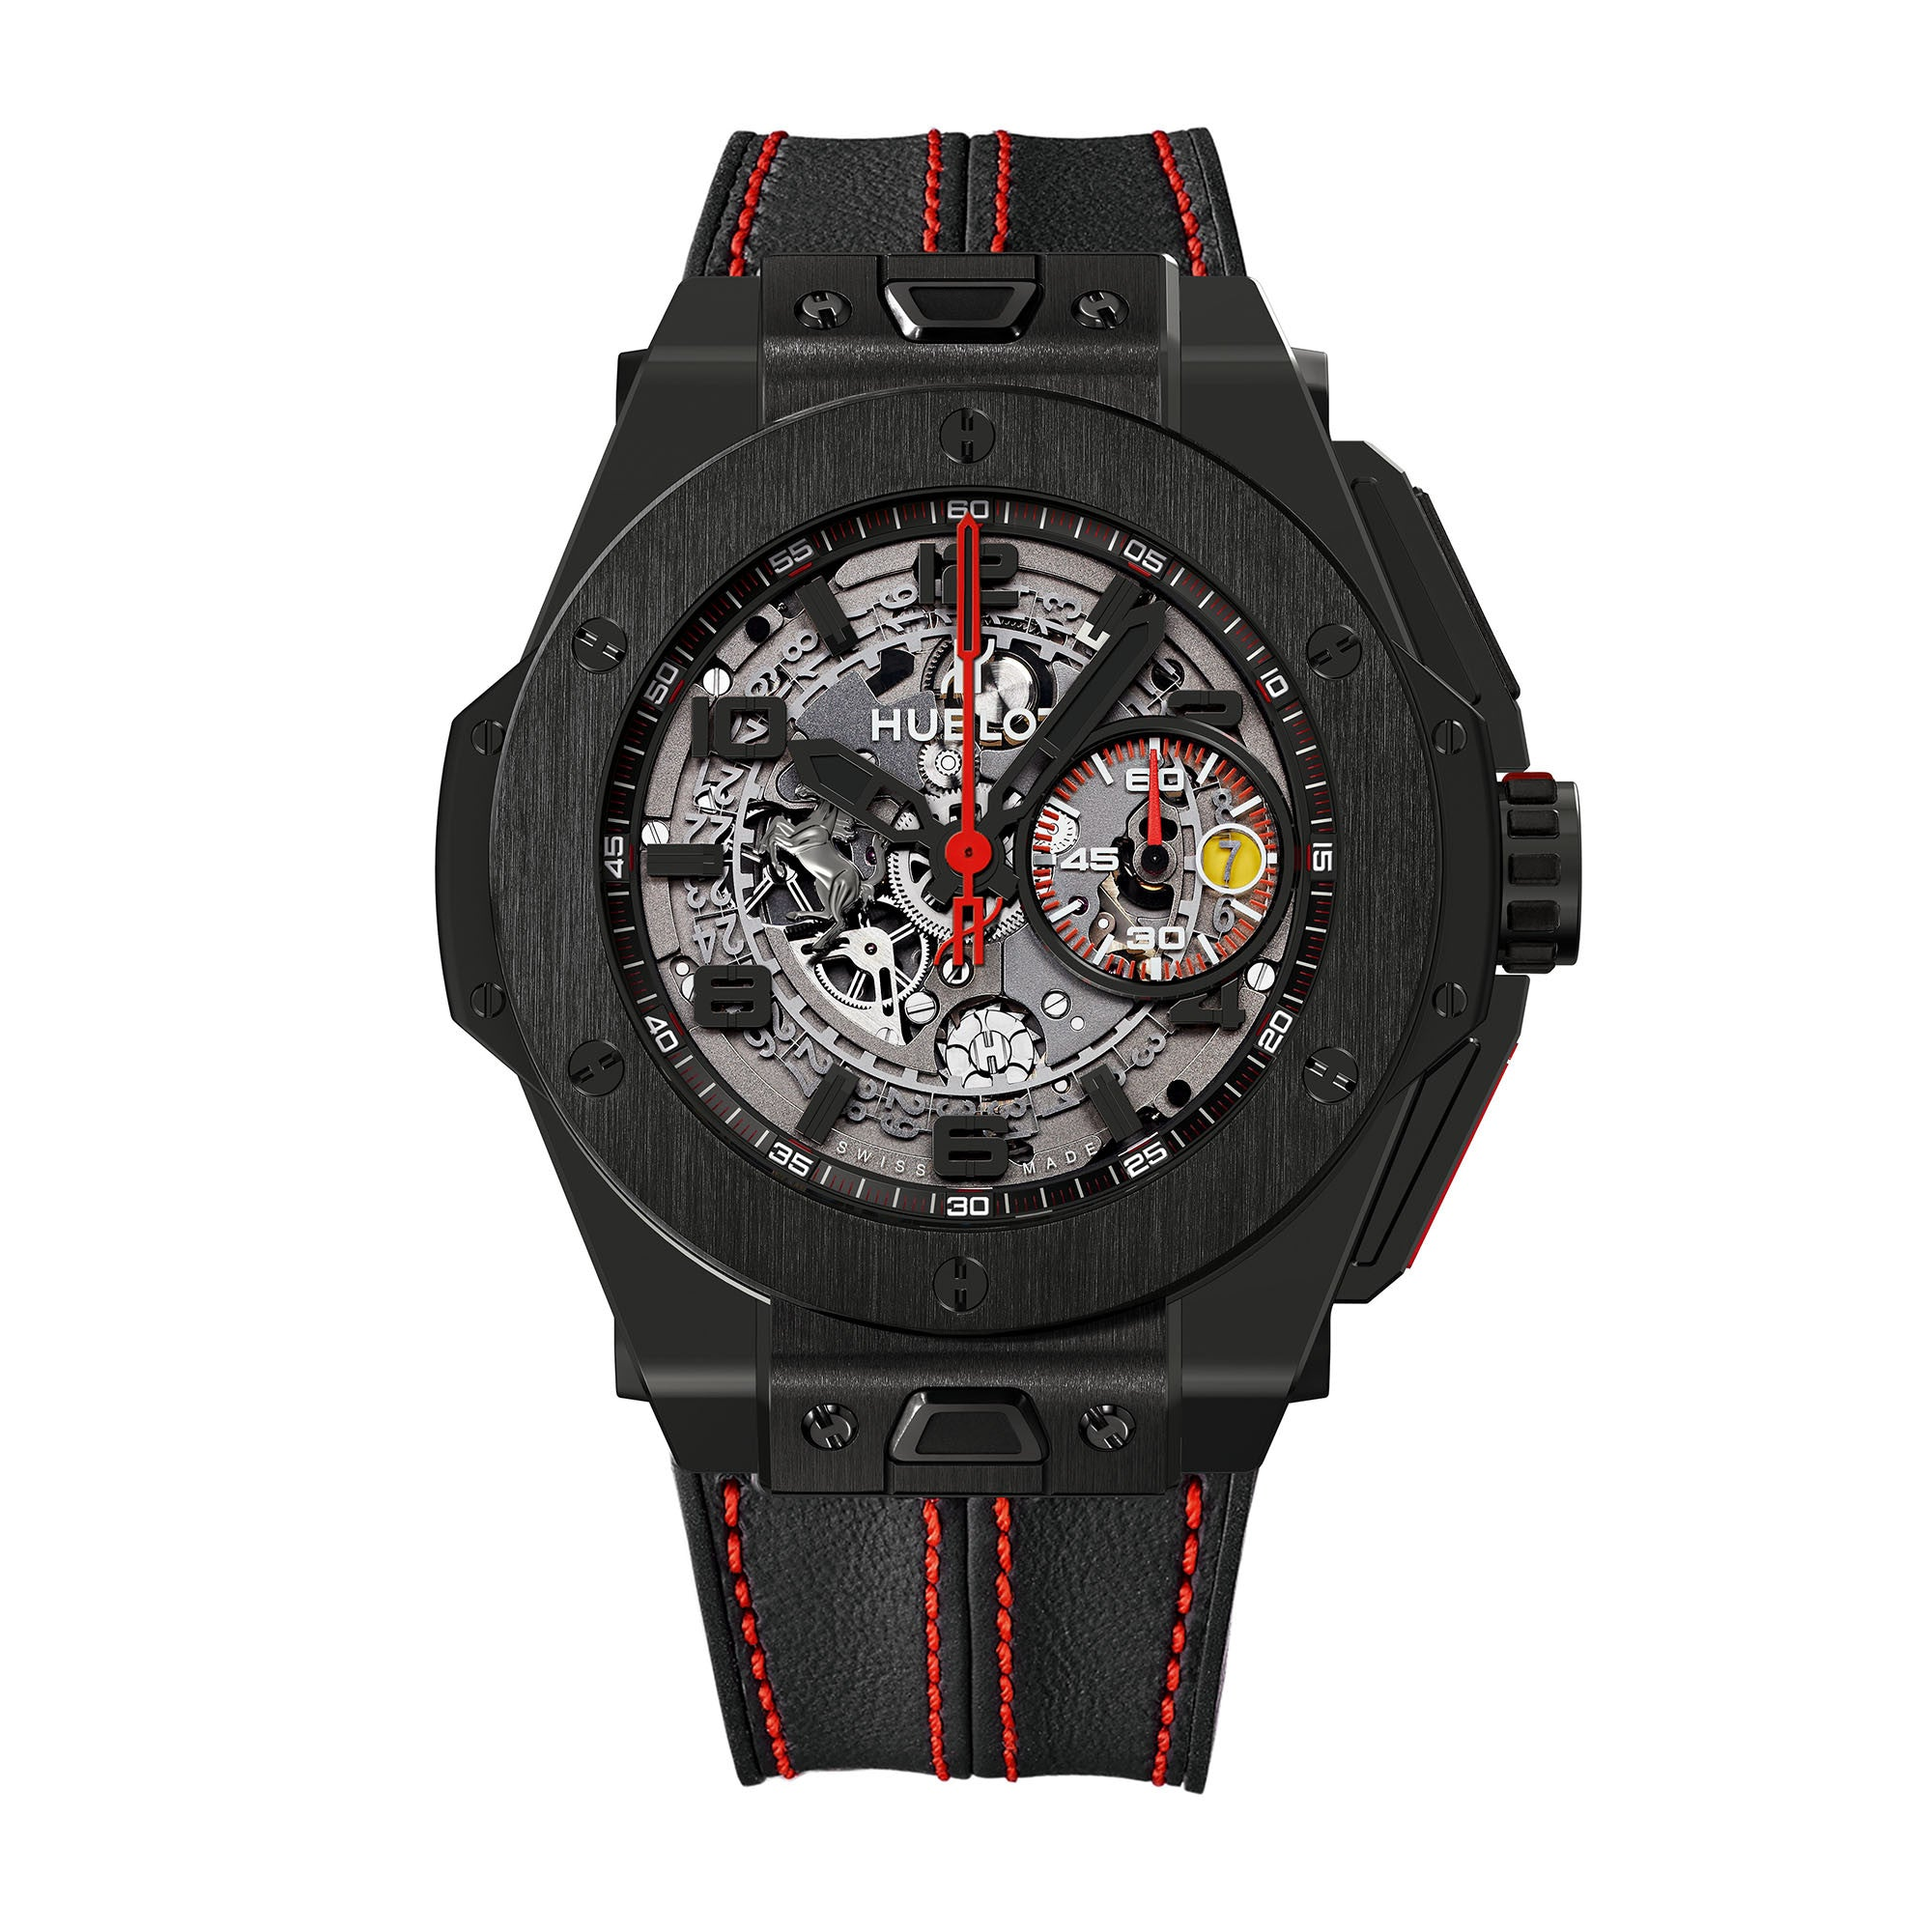 Ferrari All Black LIMITED Automatic Openwork Dial Black Ceramic Men's Watch